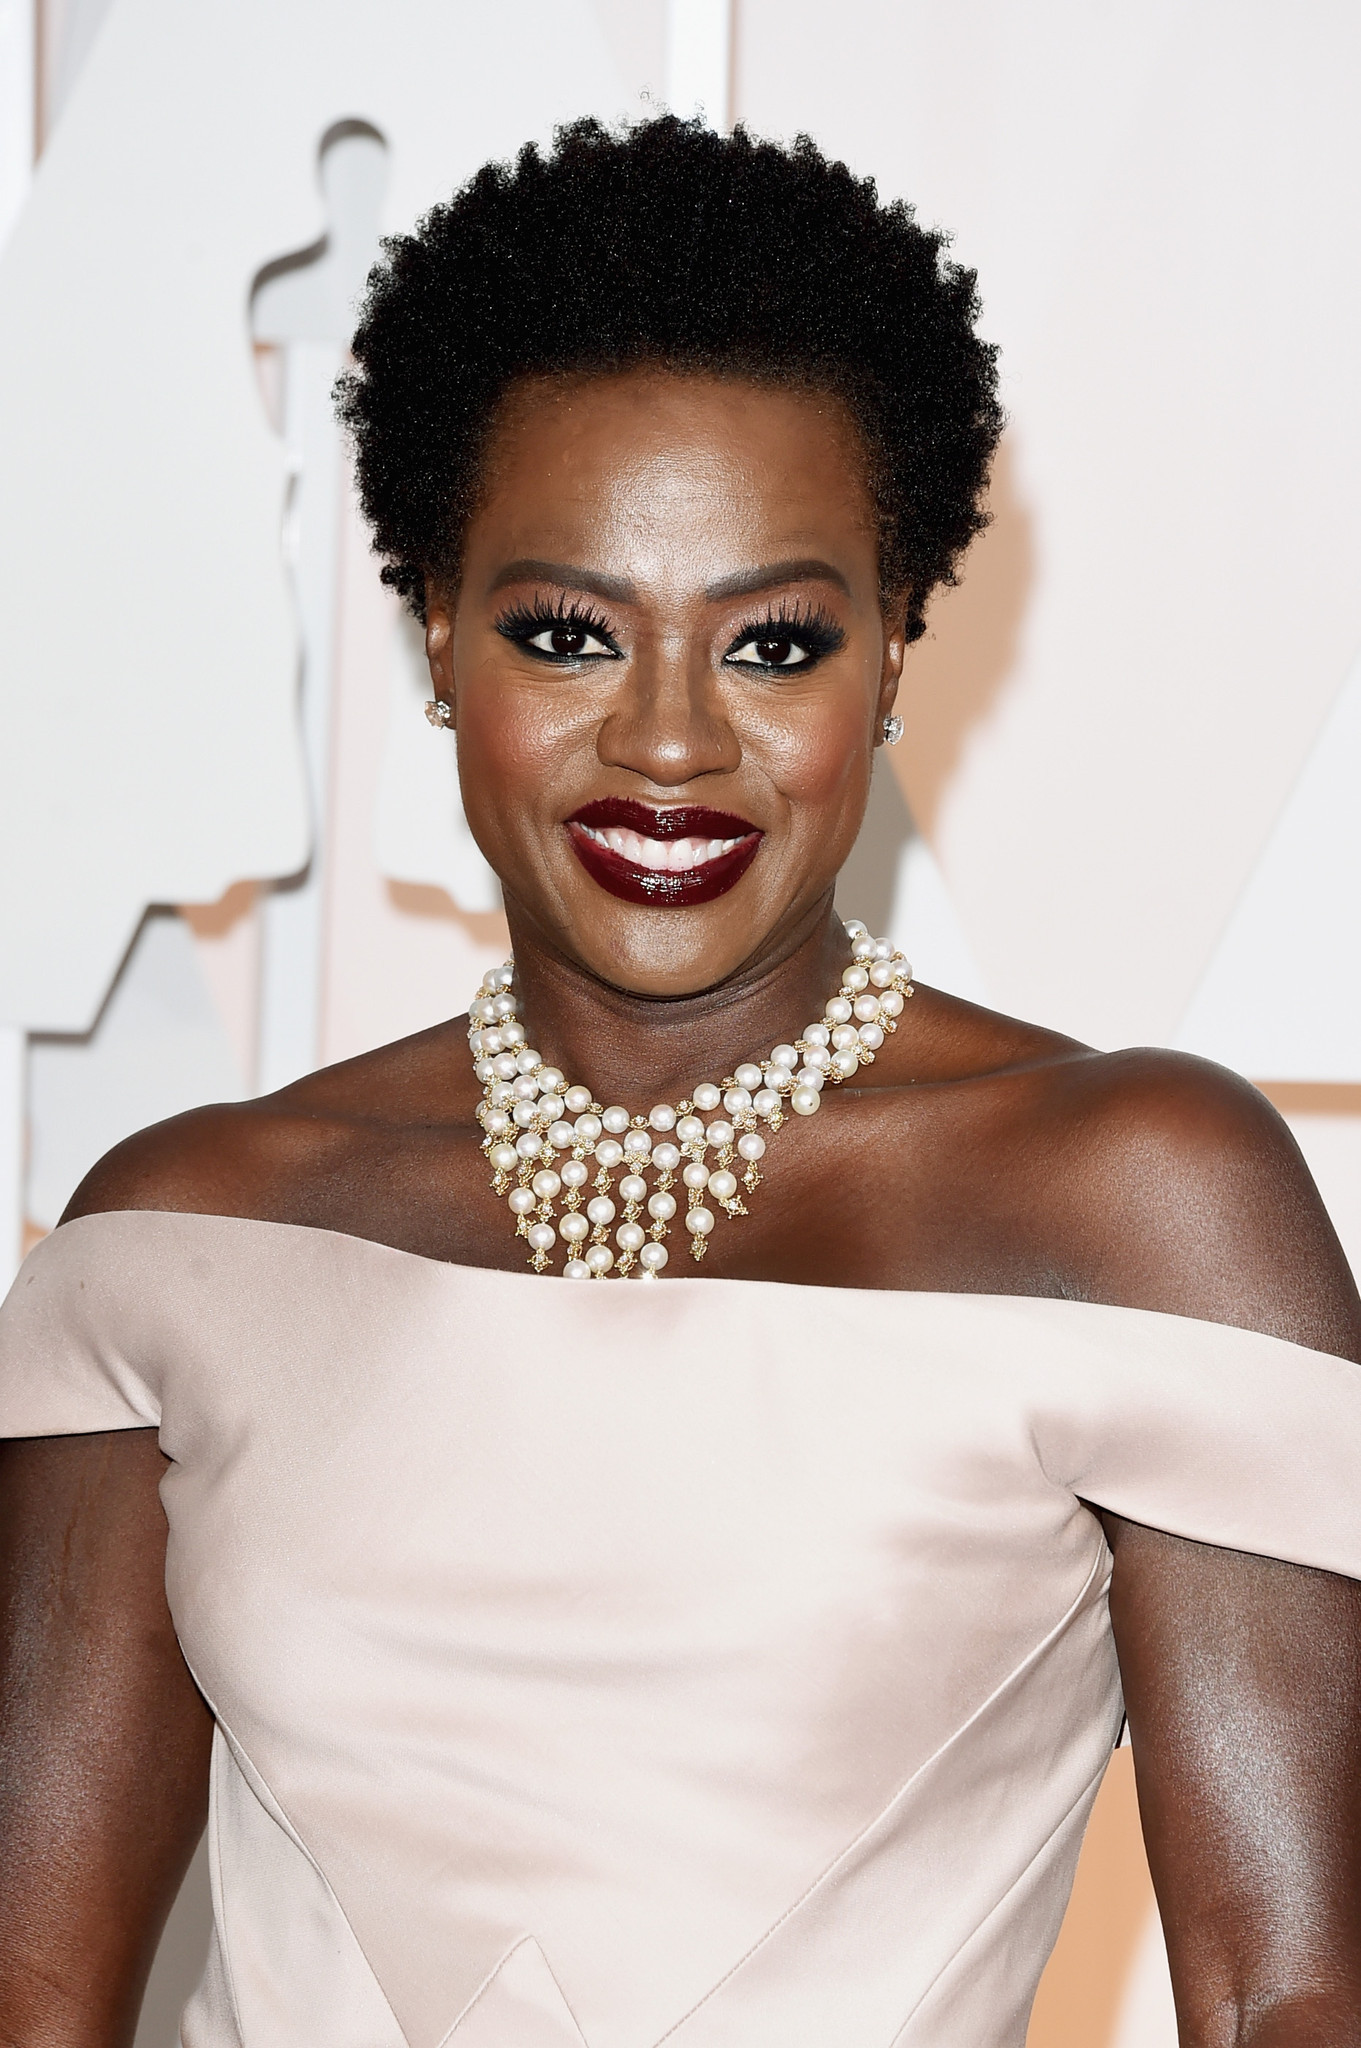 the 87th Annual Academy Awards red carpet pictures